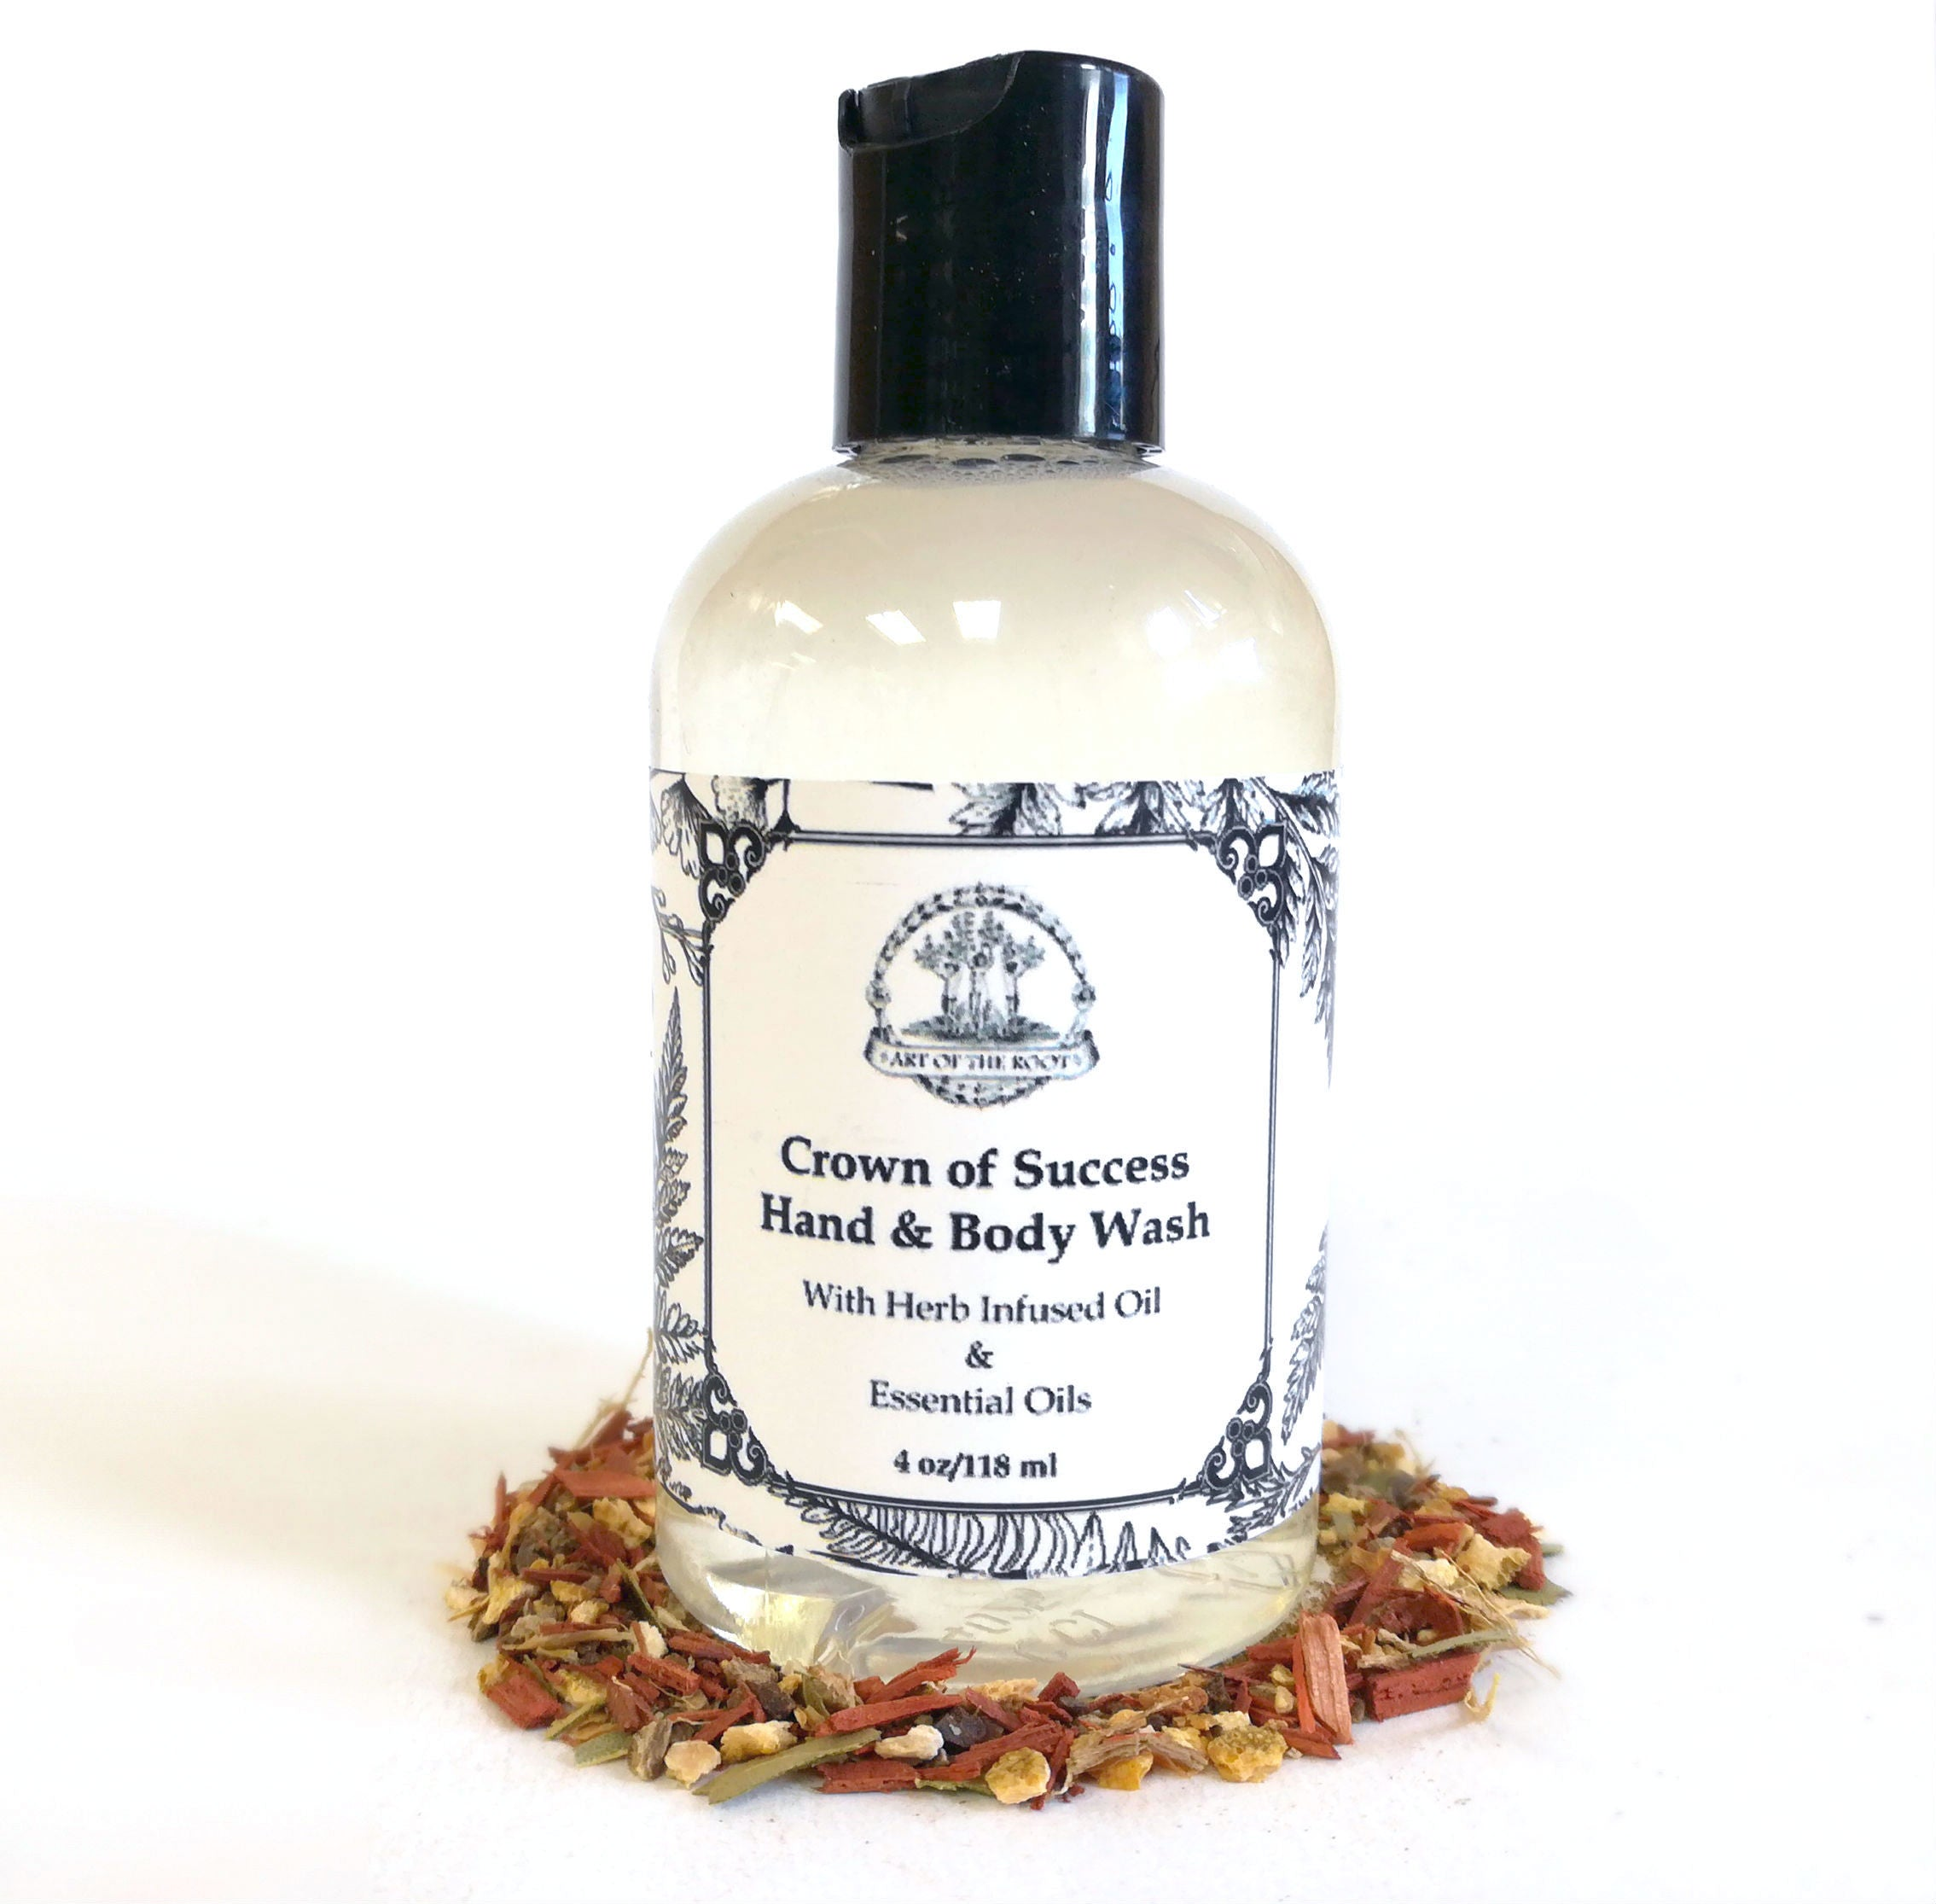 Baths for Hoodoo, Voodoo, Wicca & Pagan Rituals | Art of the Root, Ltd